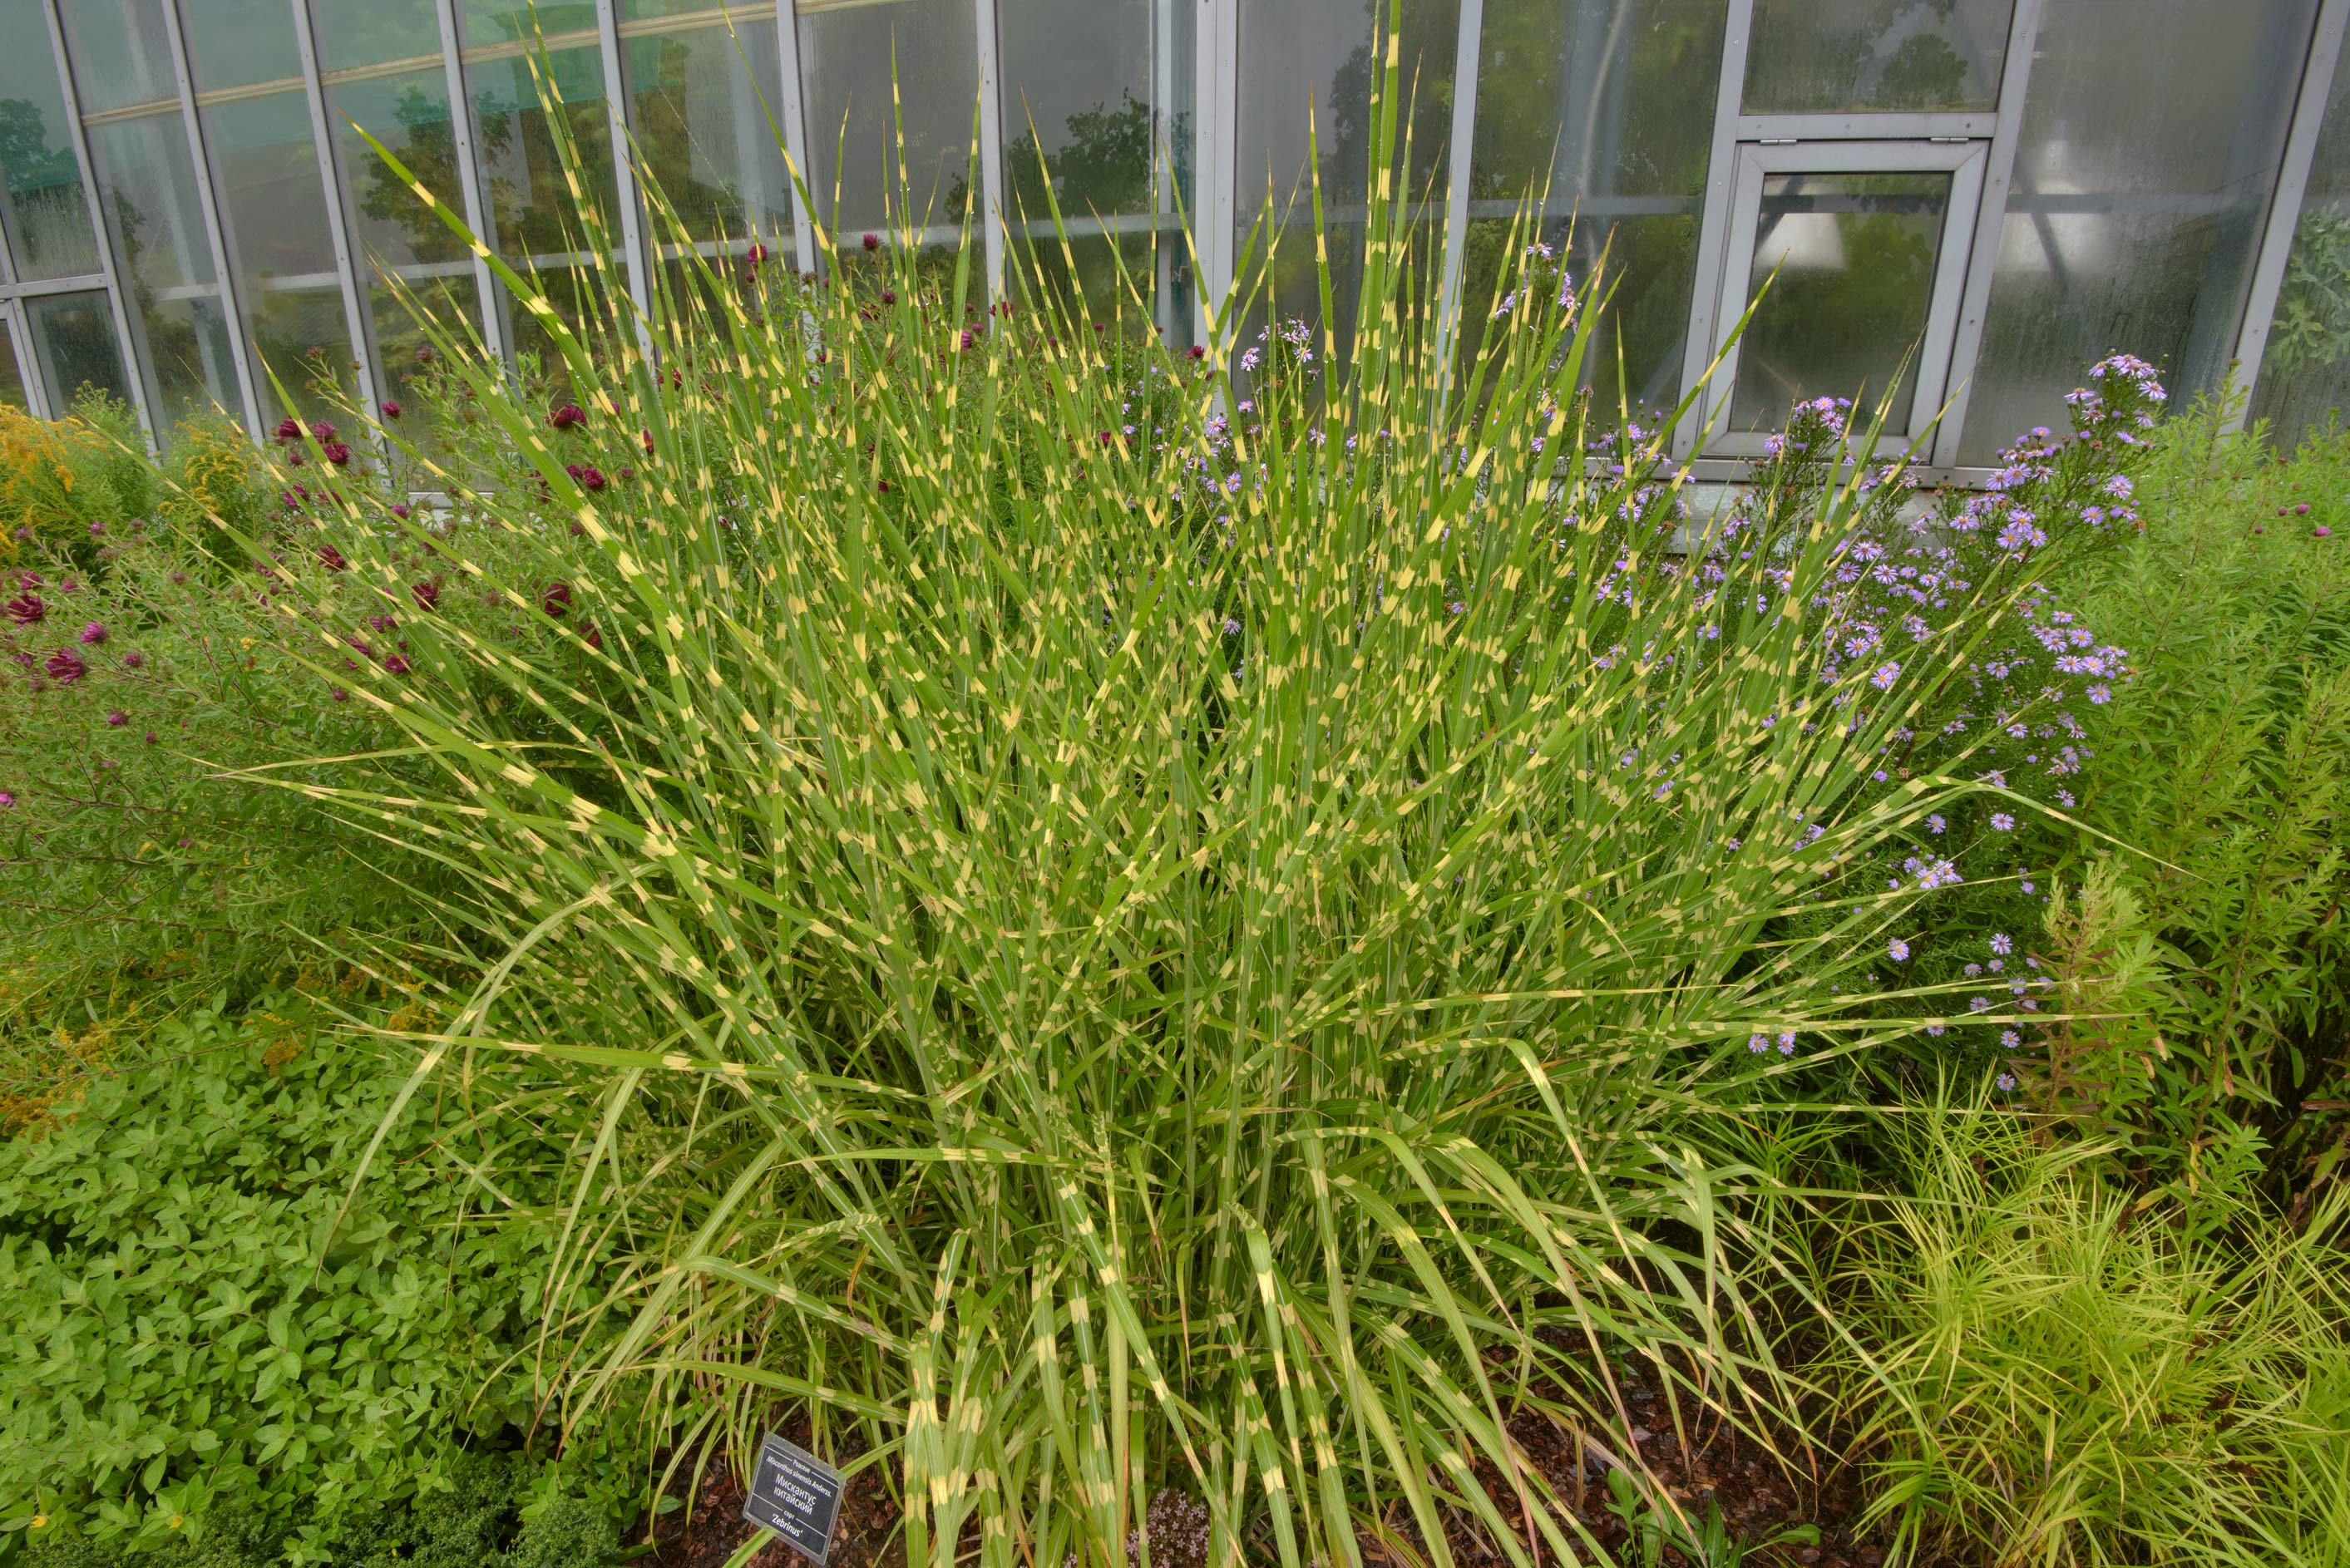 Ornamental grass Miscanthus sinensis 'Zebrinus...Institute. St.Petersburg, Russia